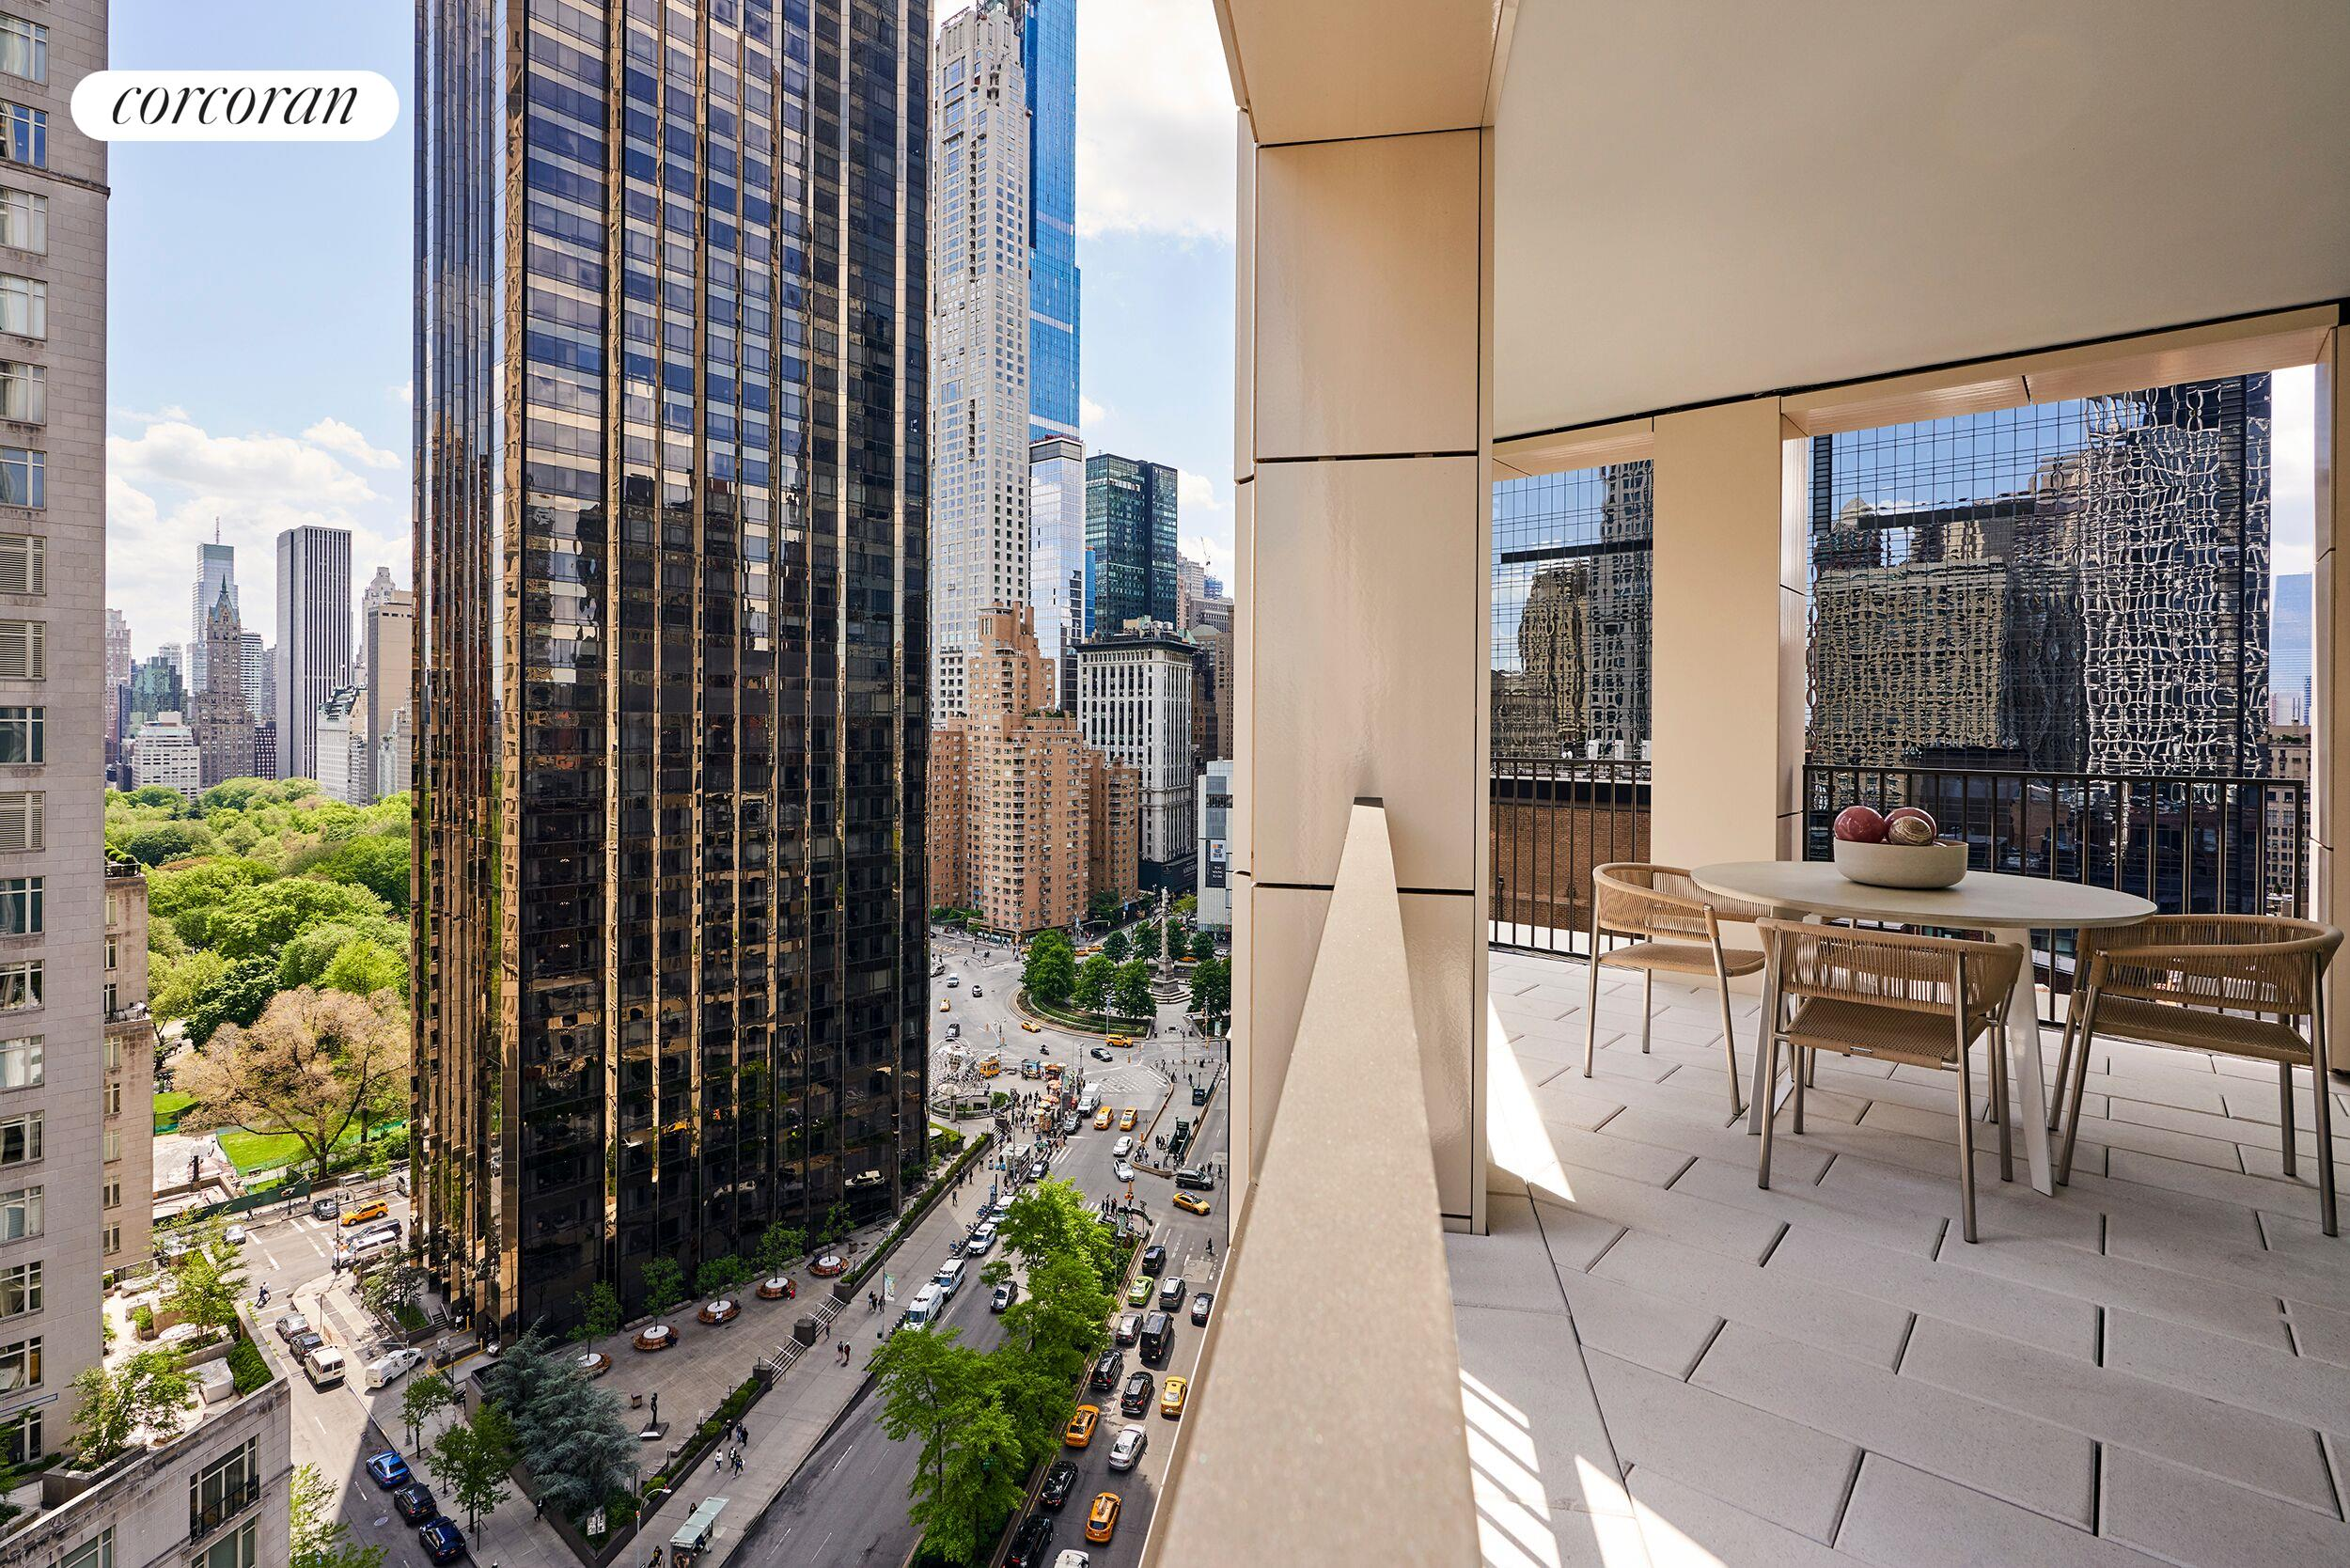 Apartment for sale at 15 West 61st Street, Apt 20A